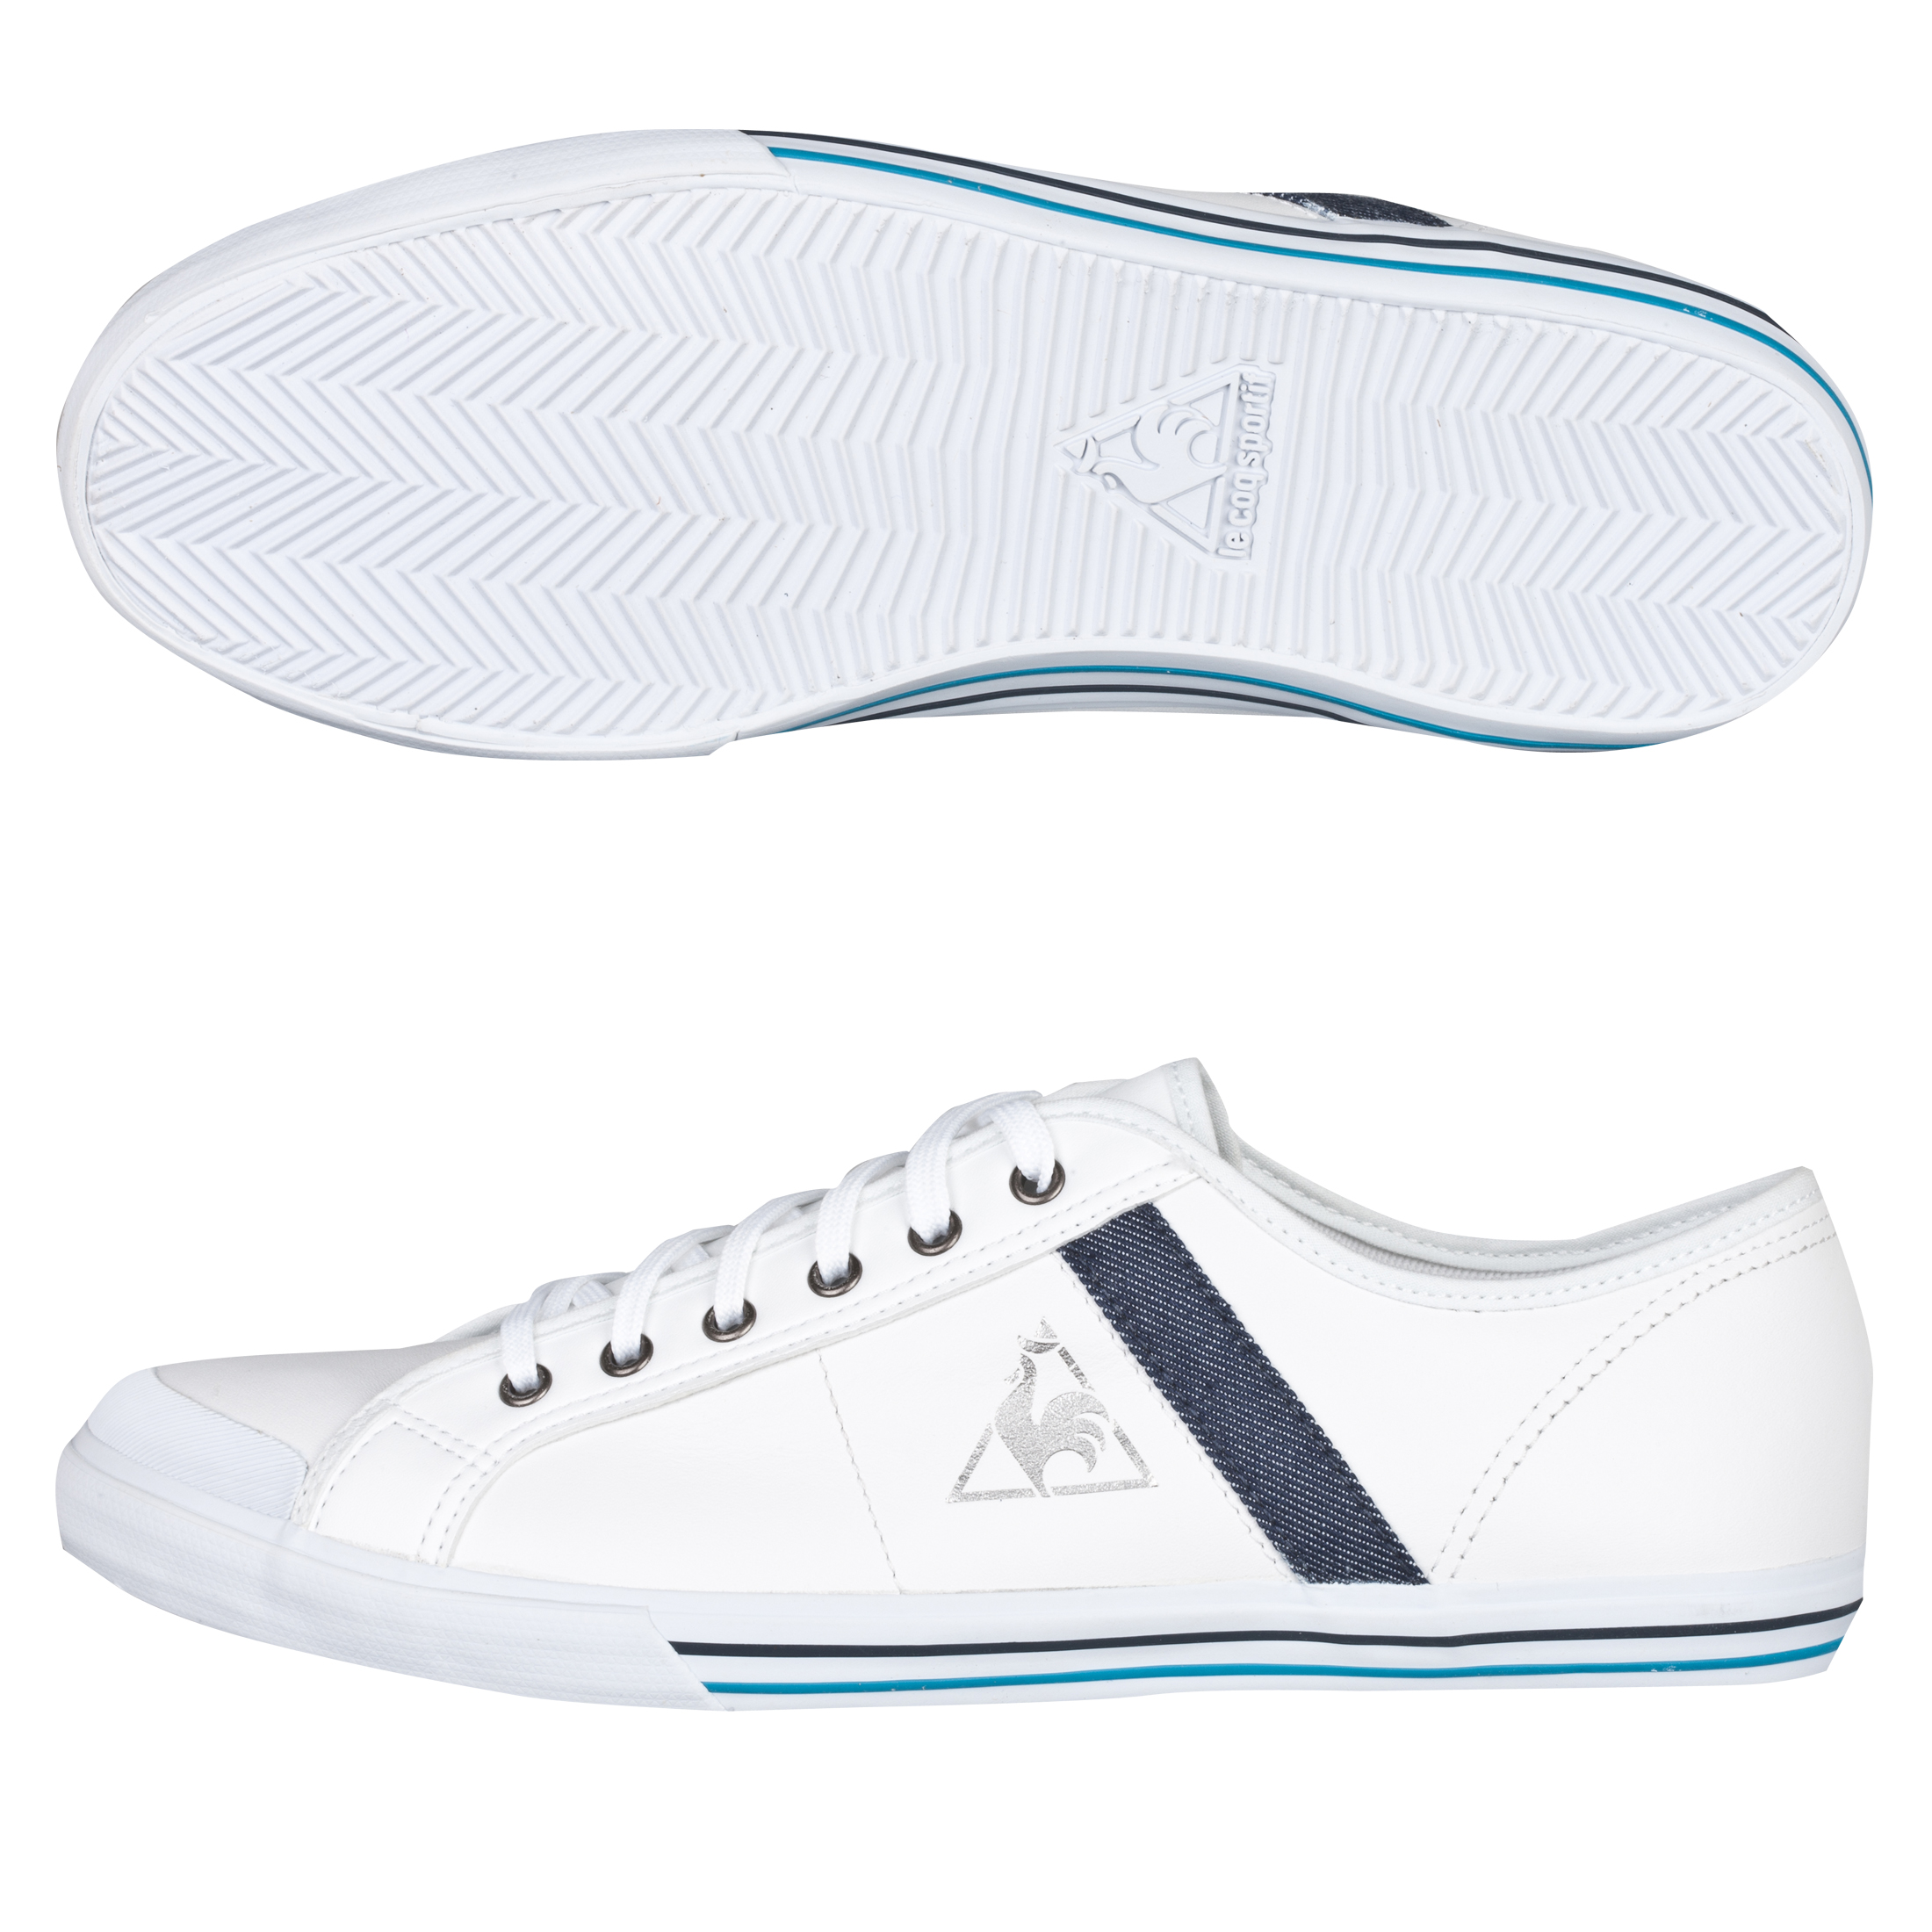 Le Coq Sportif Saint Malo Leather/Denim Trainers - White